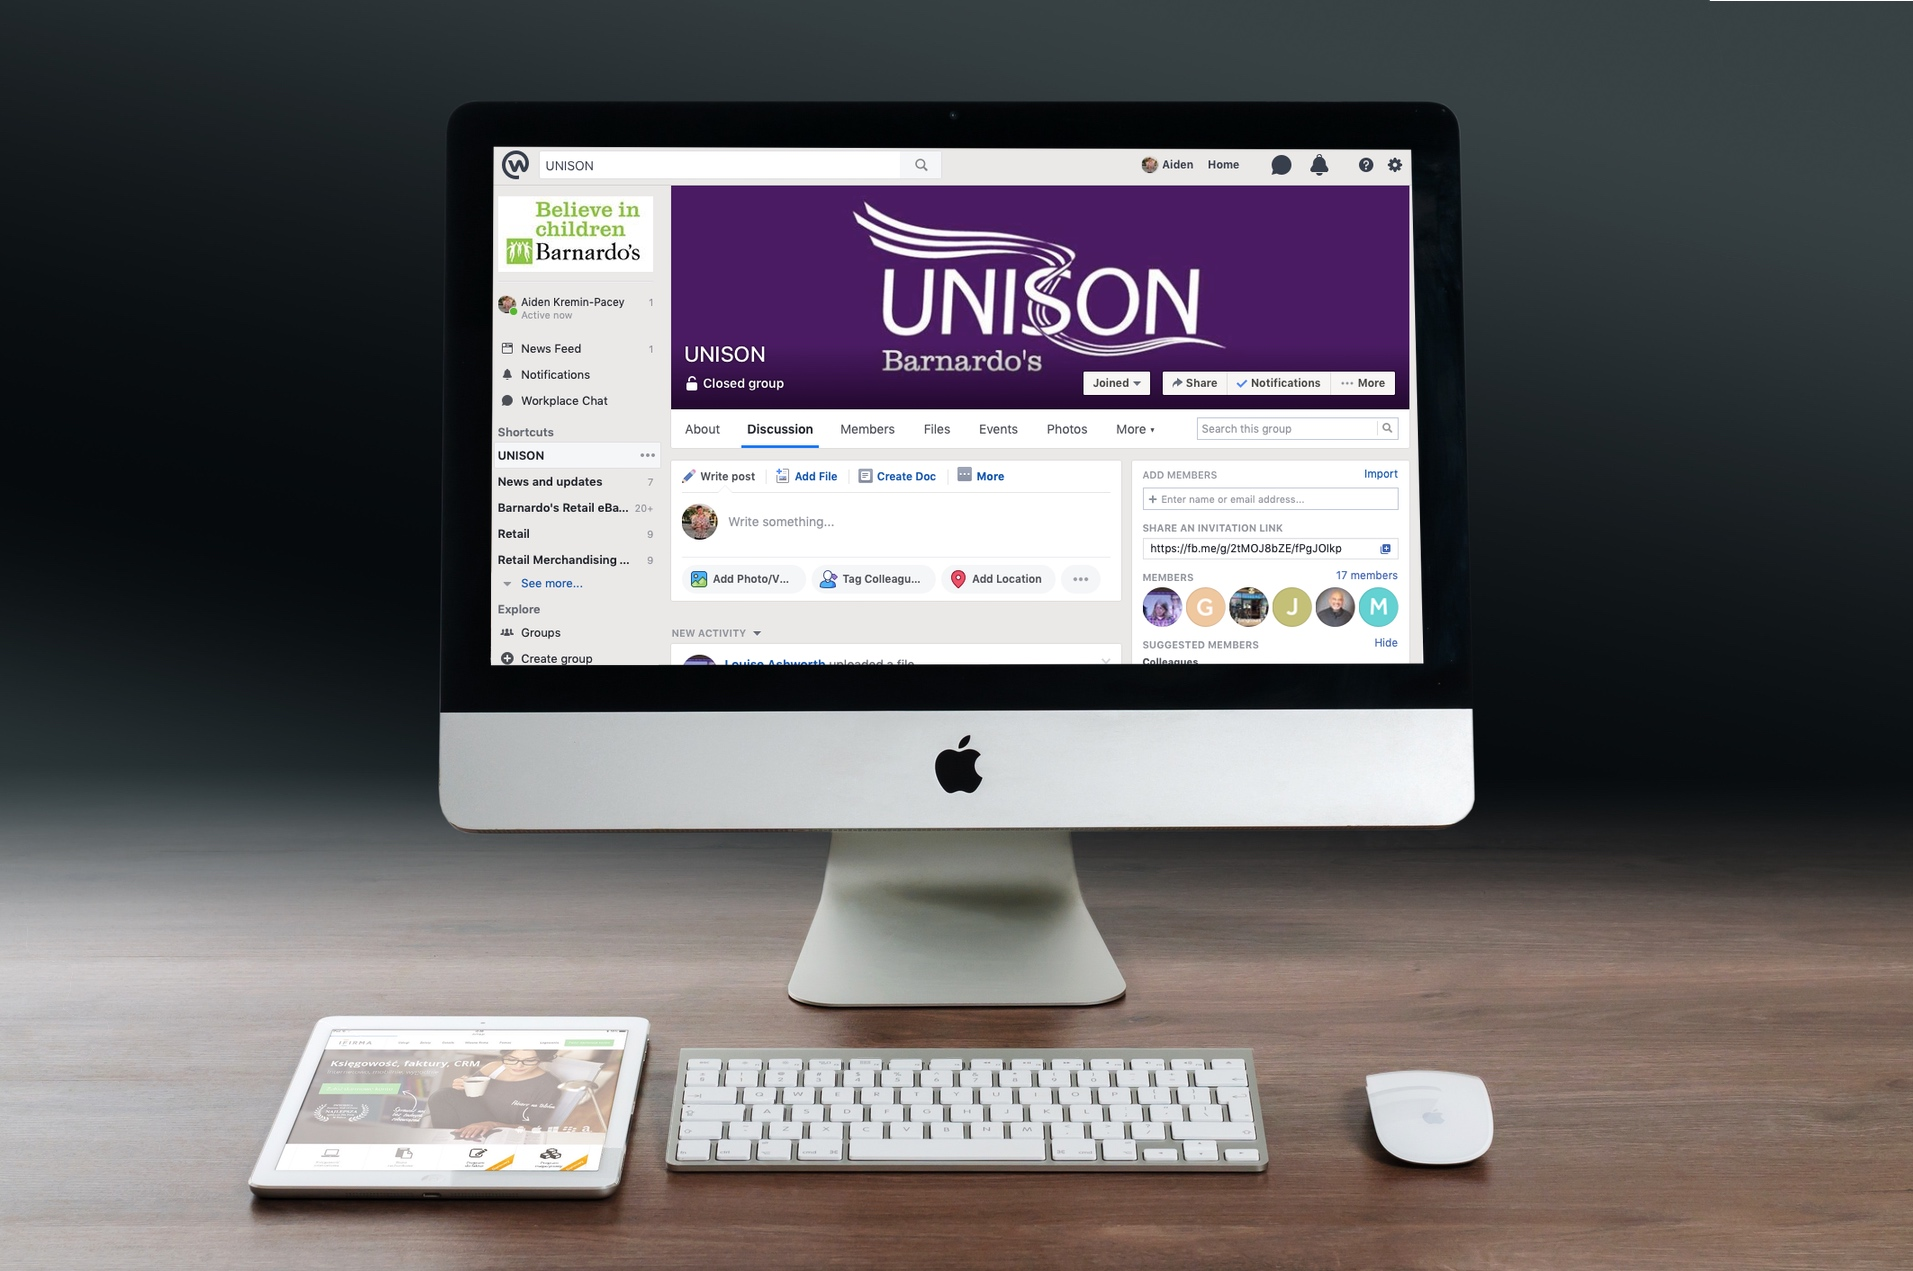 Unison Workplace monitor